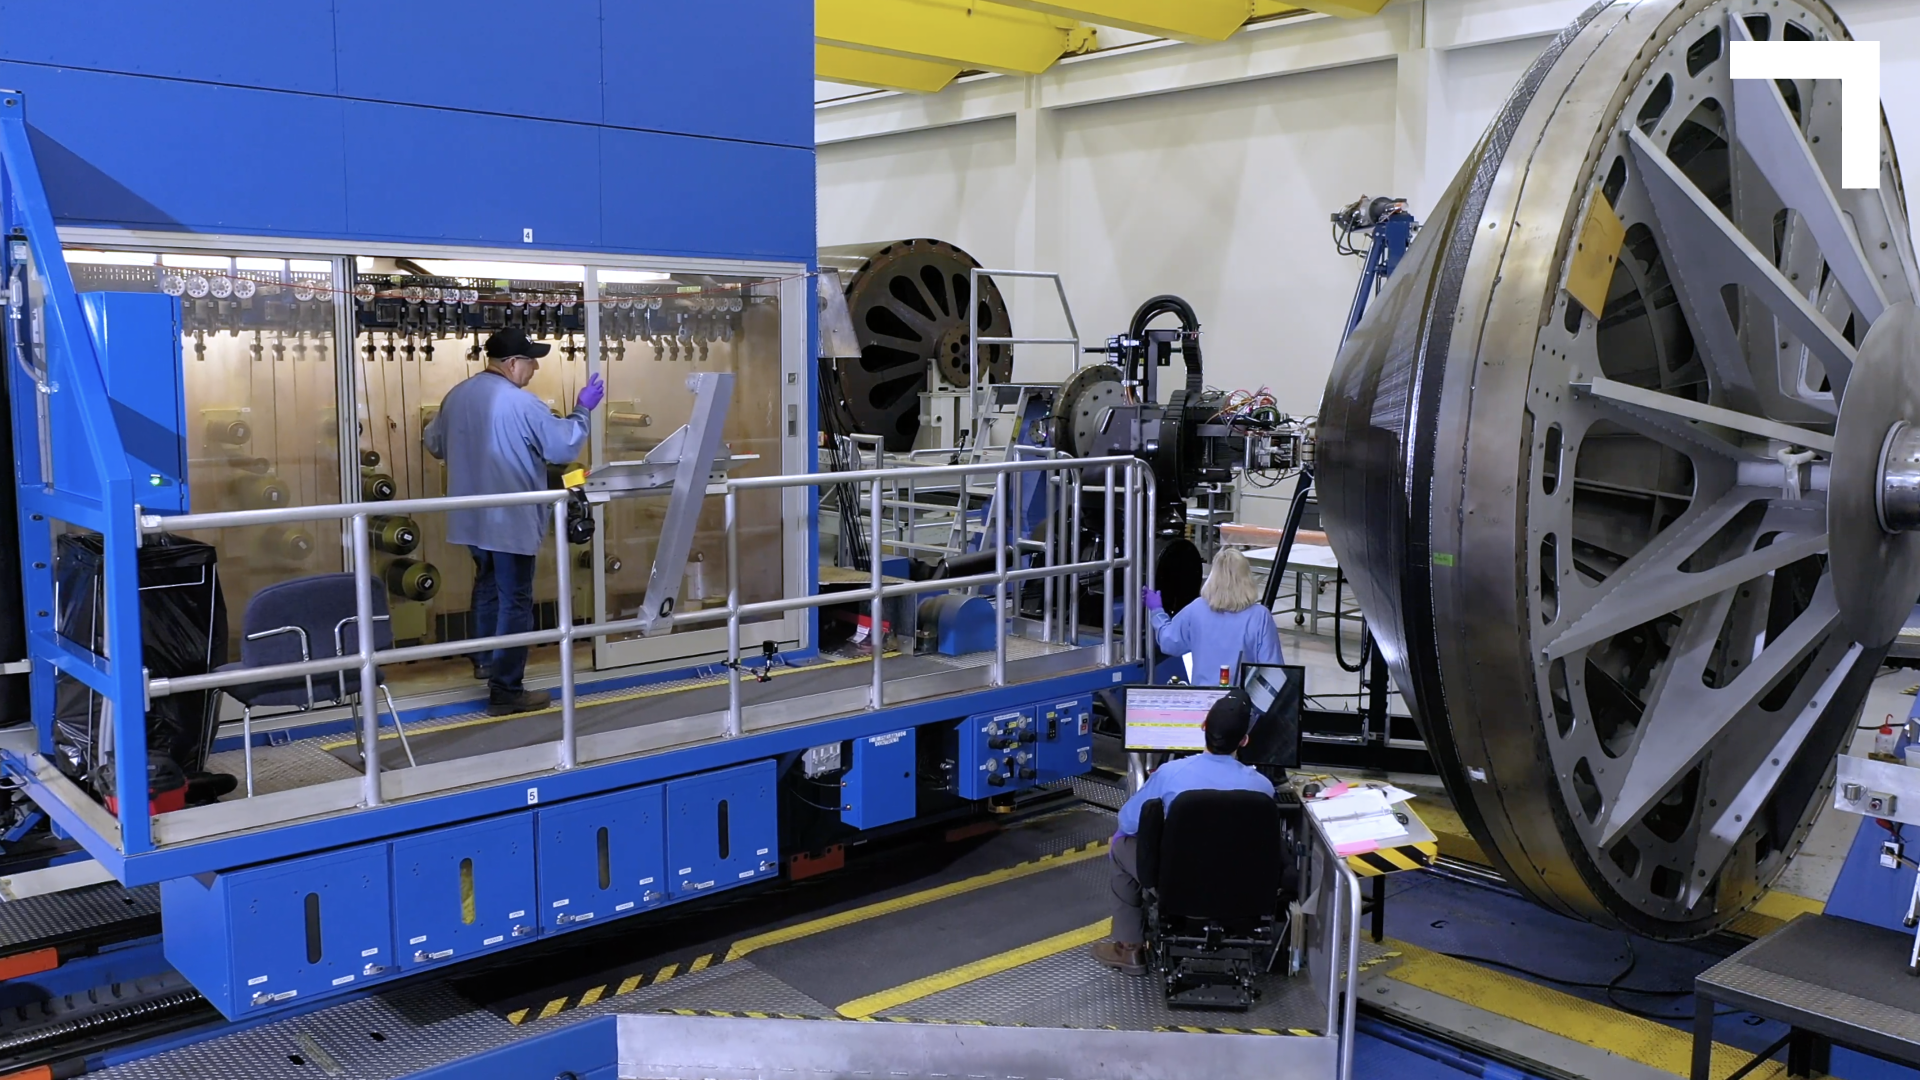 A picture from Iuka where fiber replacement technologies are used for the OmegA rocket.